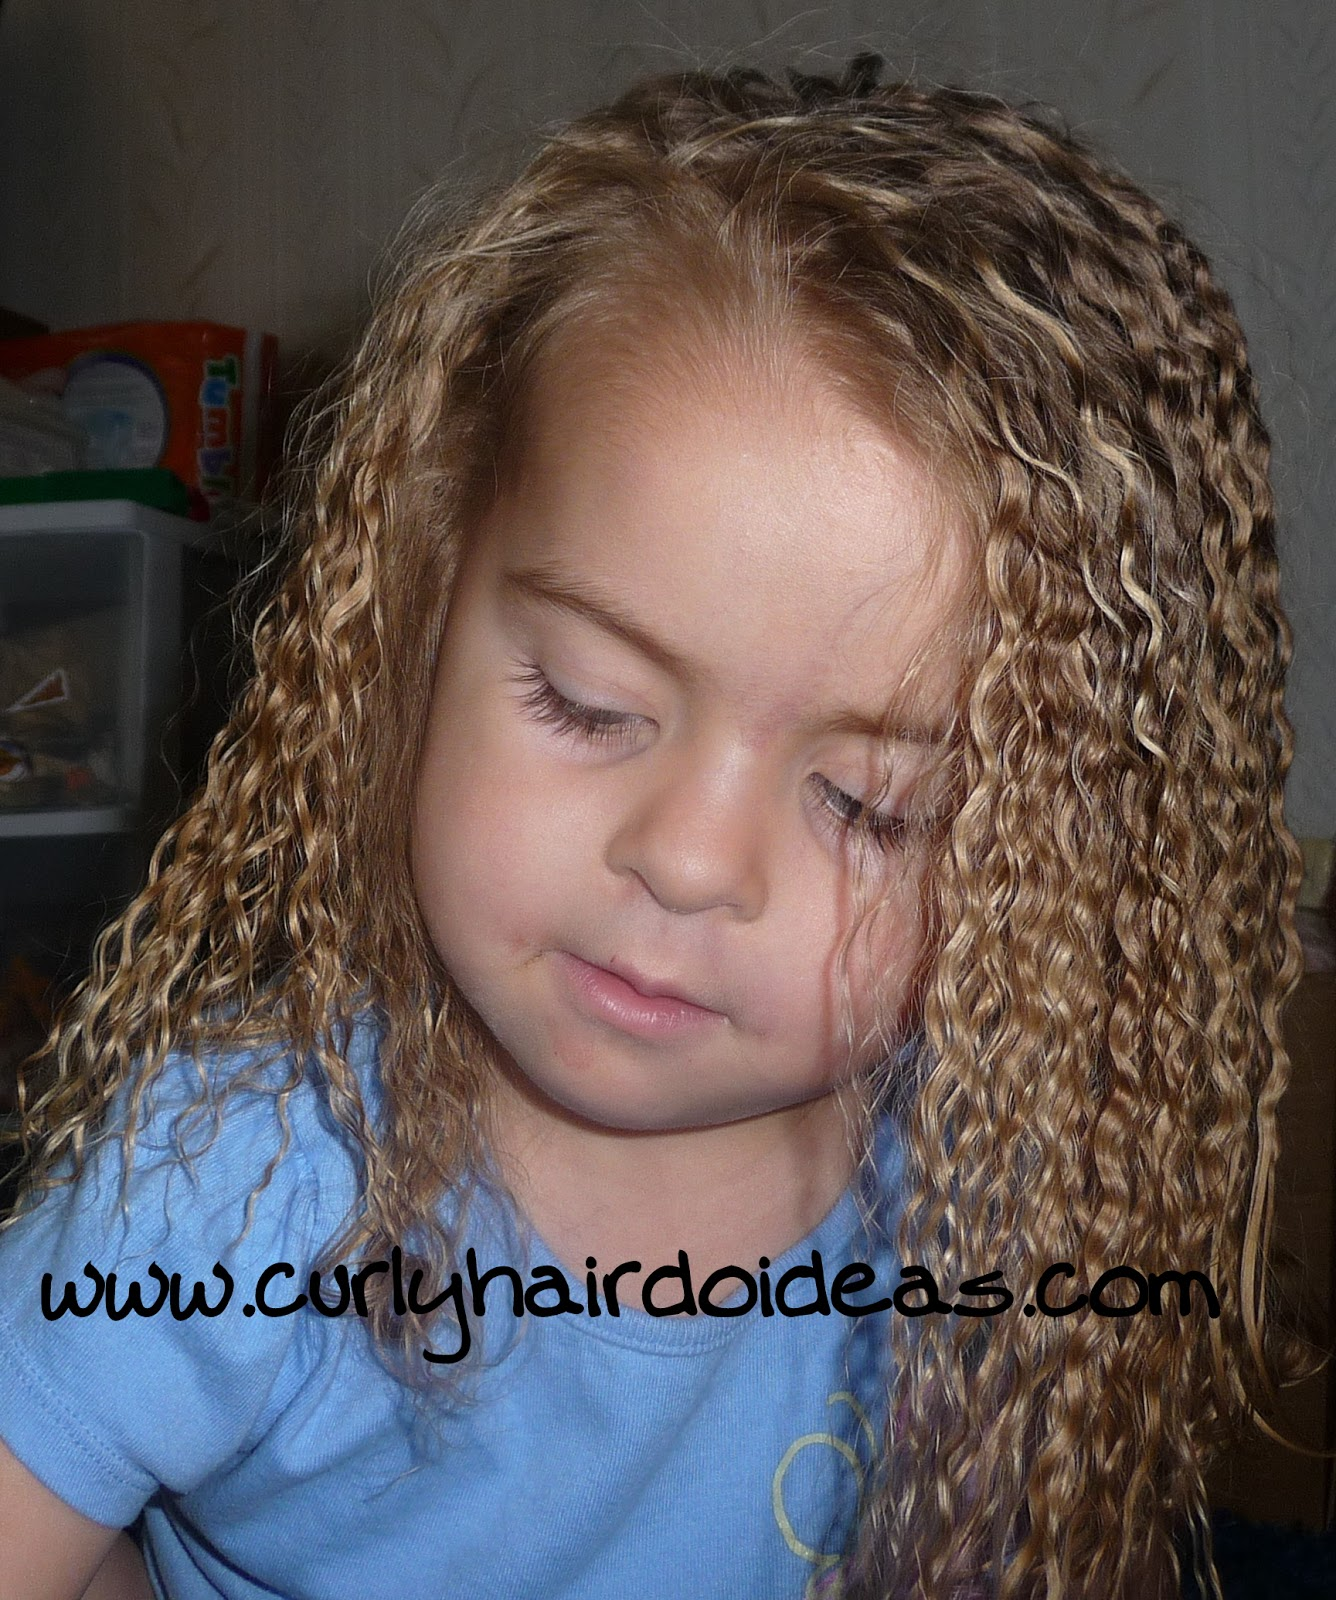 Curly Hairdo Ideas: Braid Out! or Day After Waves